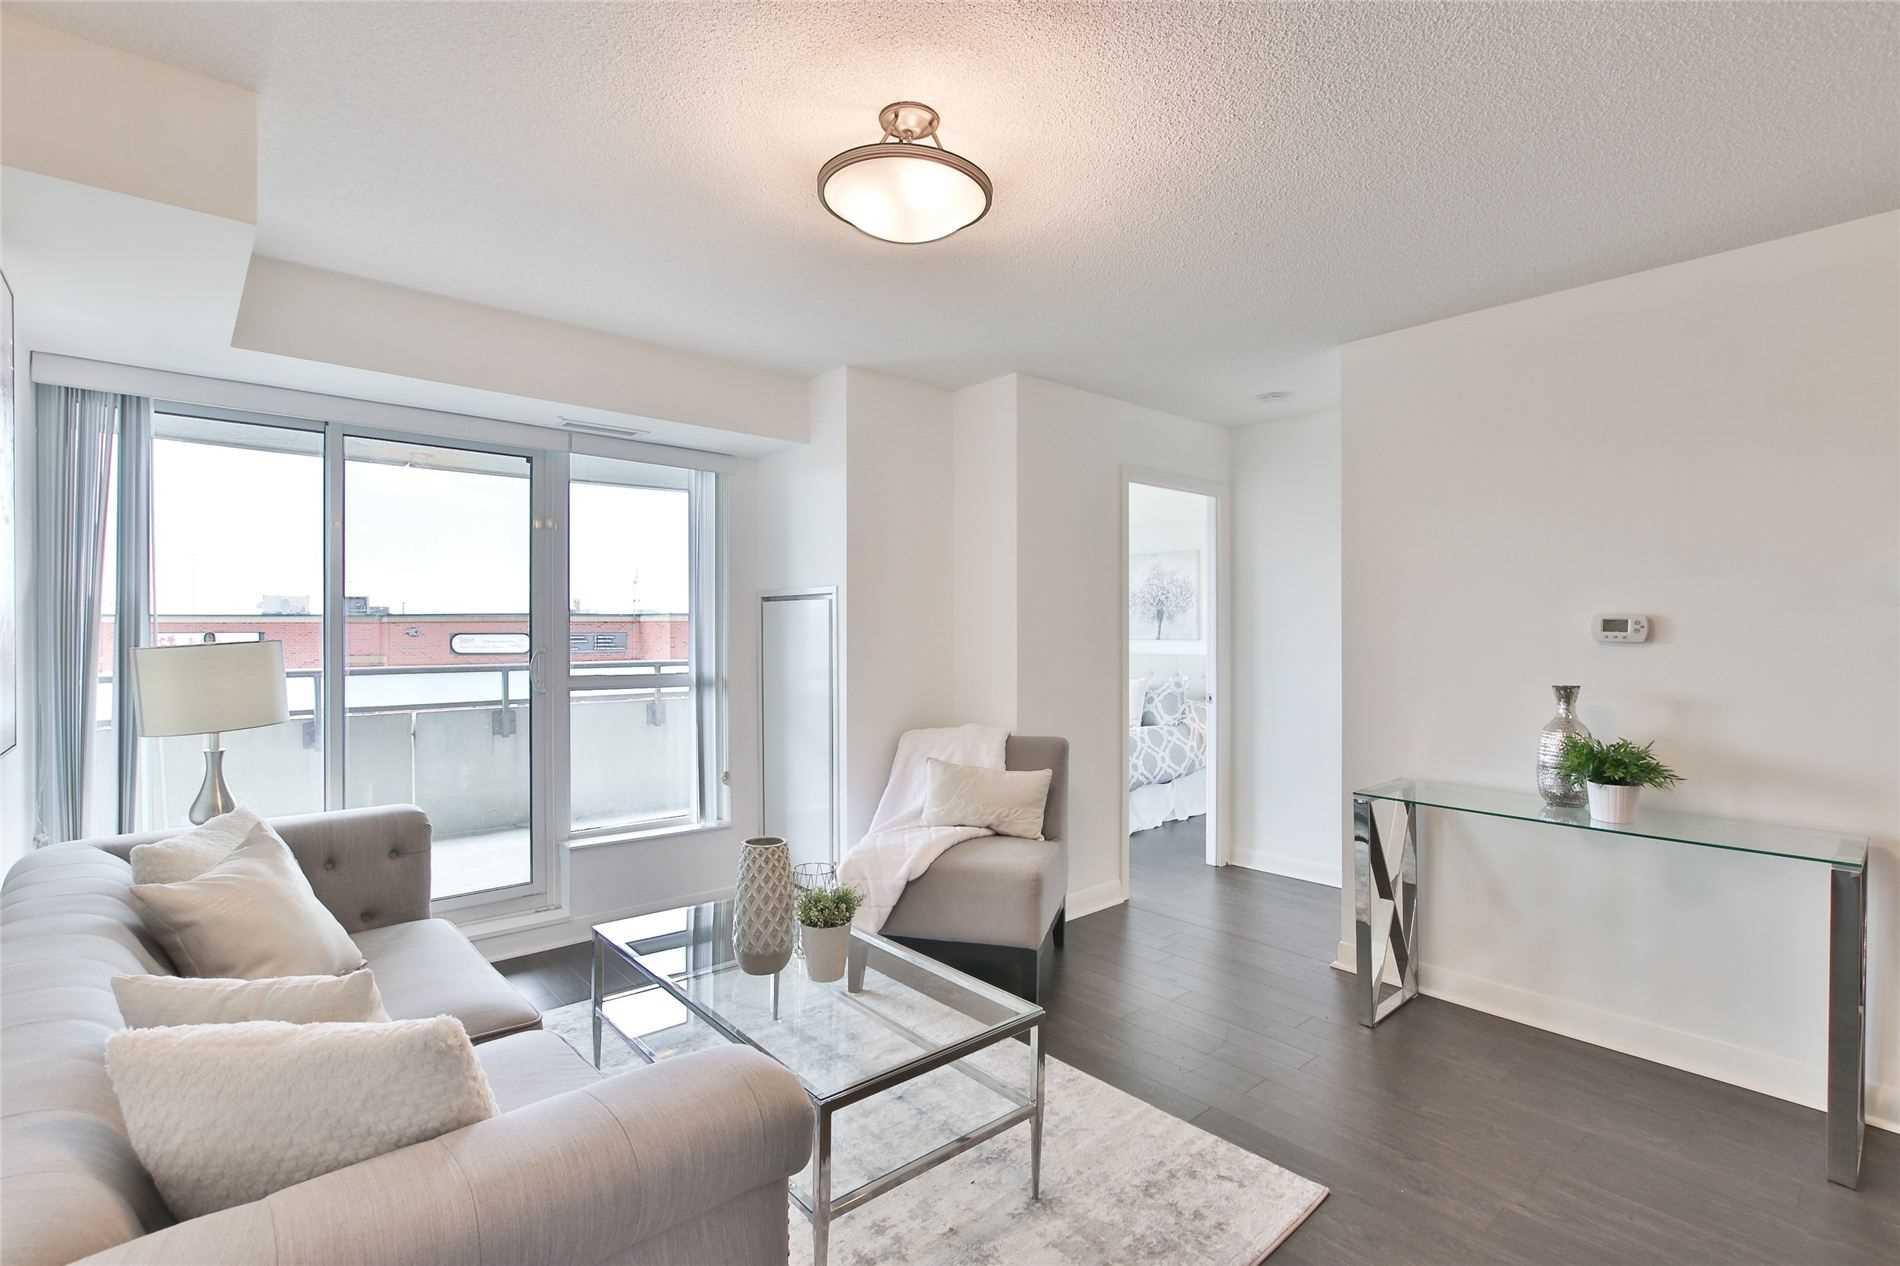 209 - 75 Norman Bethune Ave - Beaver Creek Business Park Condo Apt for sale, 2 Bedrooms (N5305489) - #7